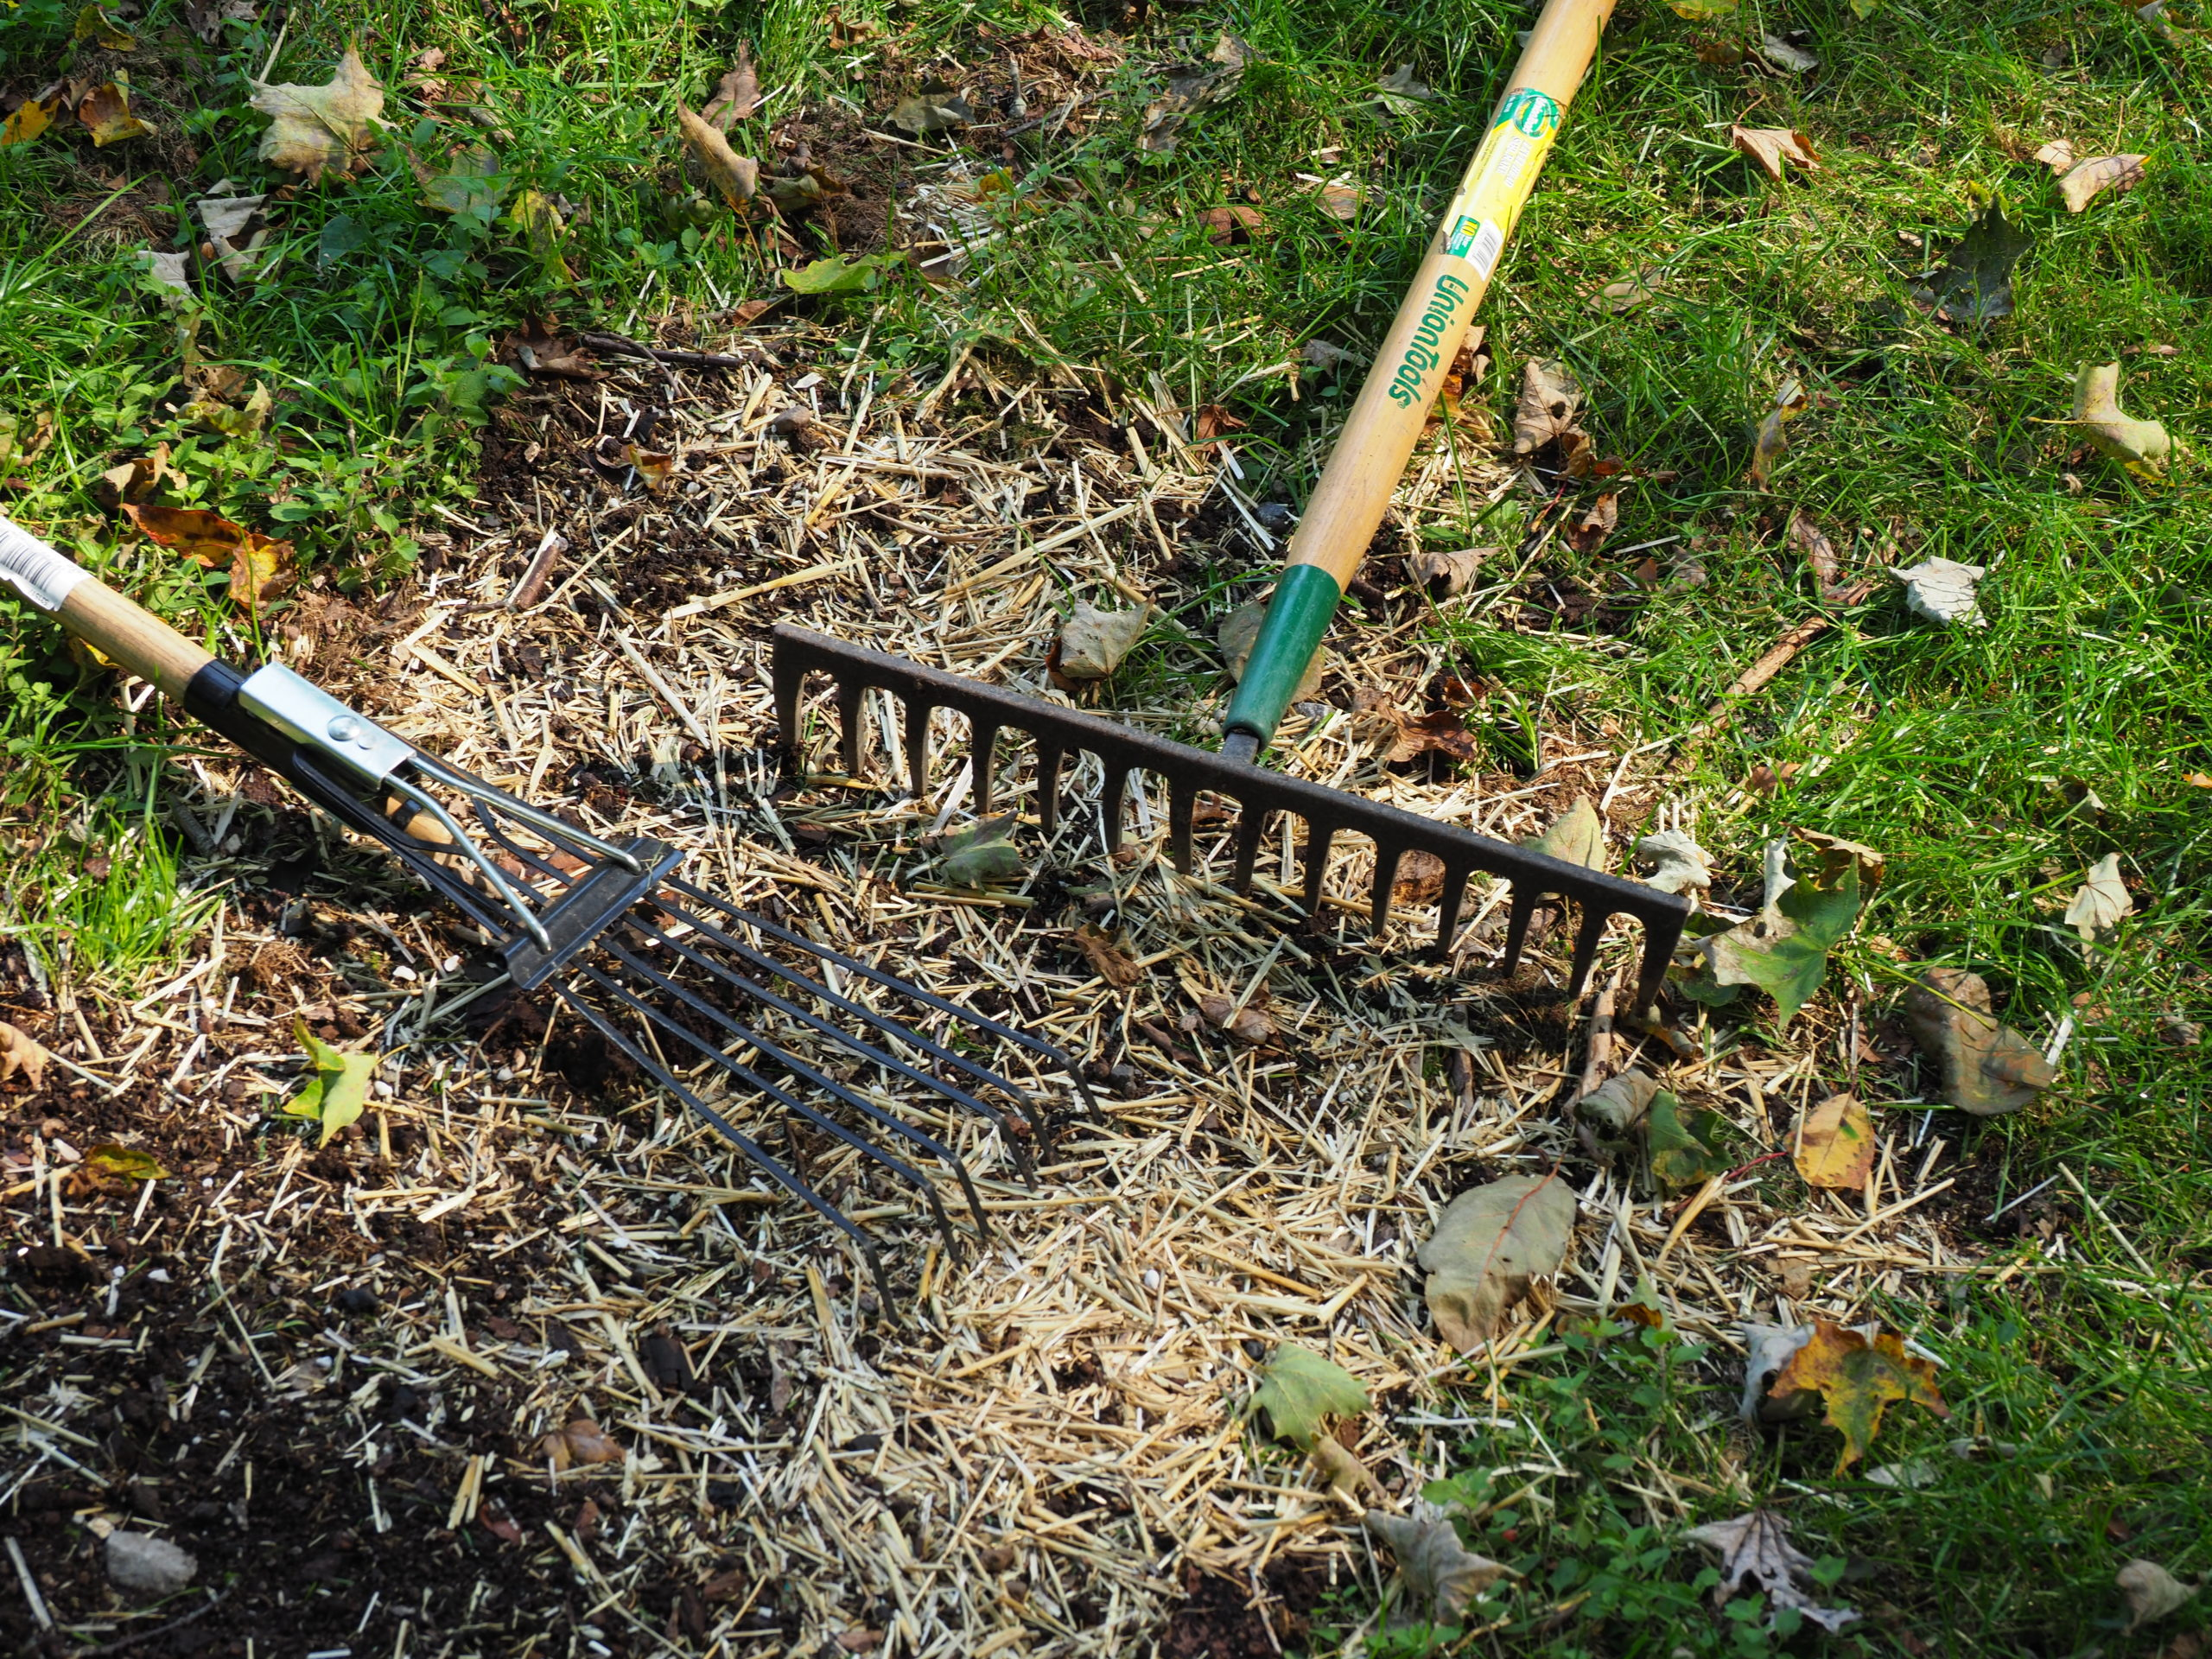 The two tools used in this project were a 5-inch steel fan rake to rough up the patch area and remove the dead grass and weeds.  The metal tine rake has 3 inch tines over 15 inches and is used for leveling, raking and tamping.